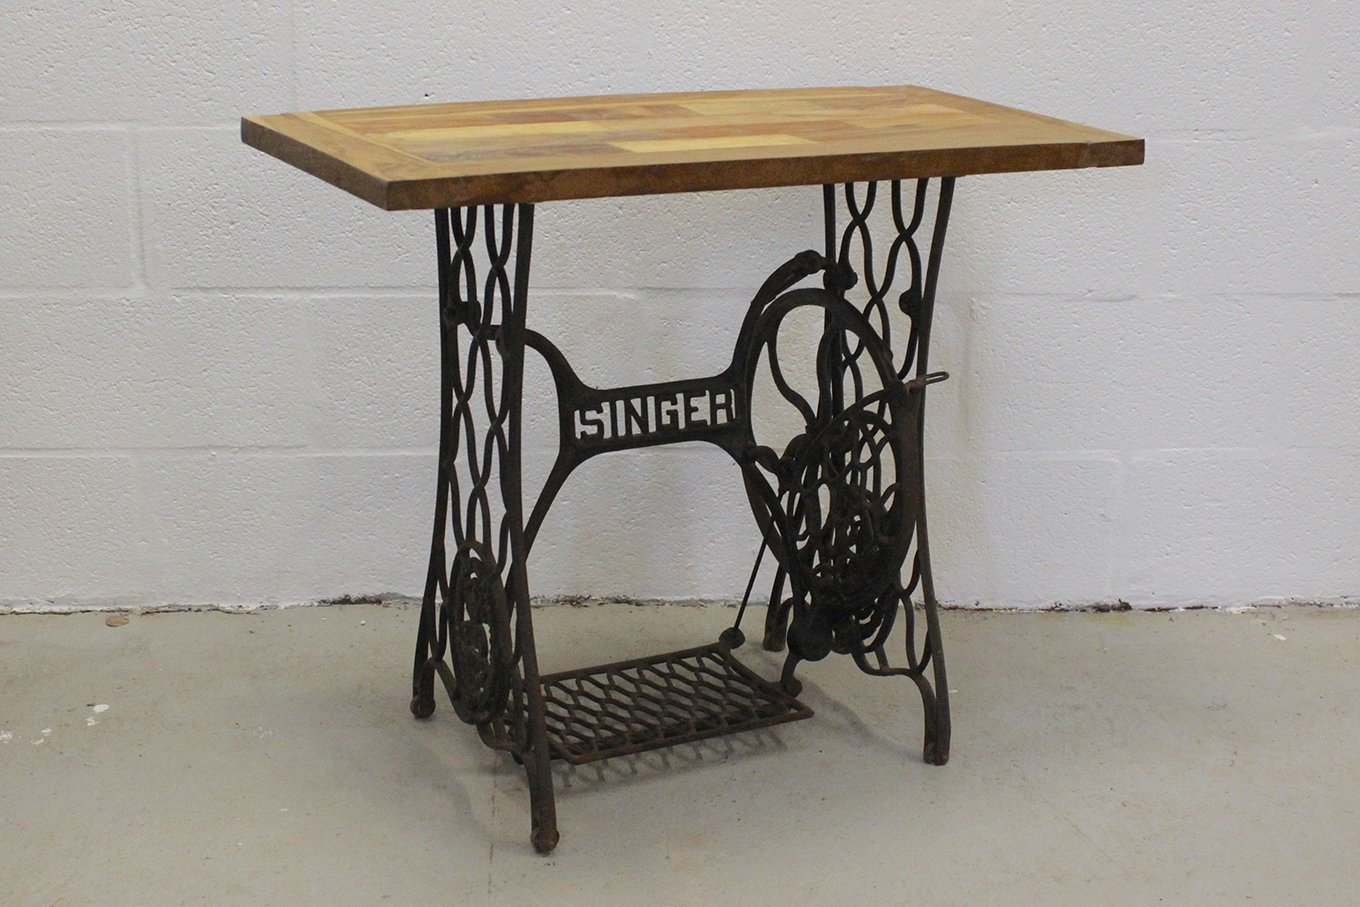 Original Singer sewing machine base with reclaimed wood top